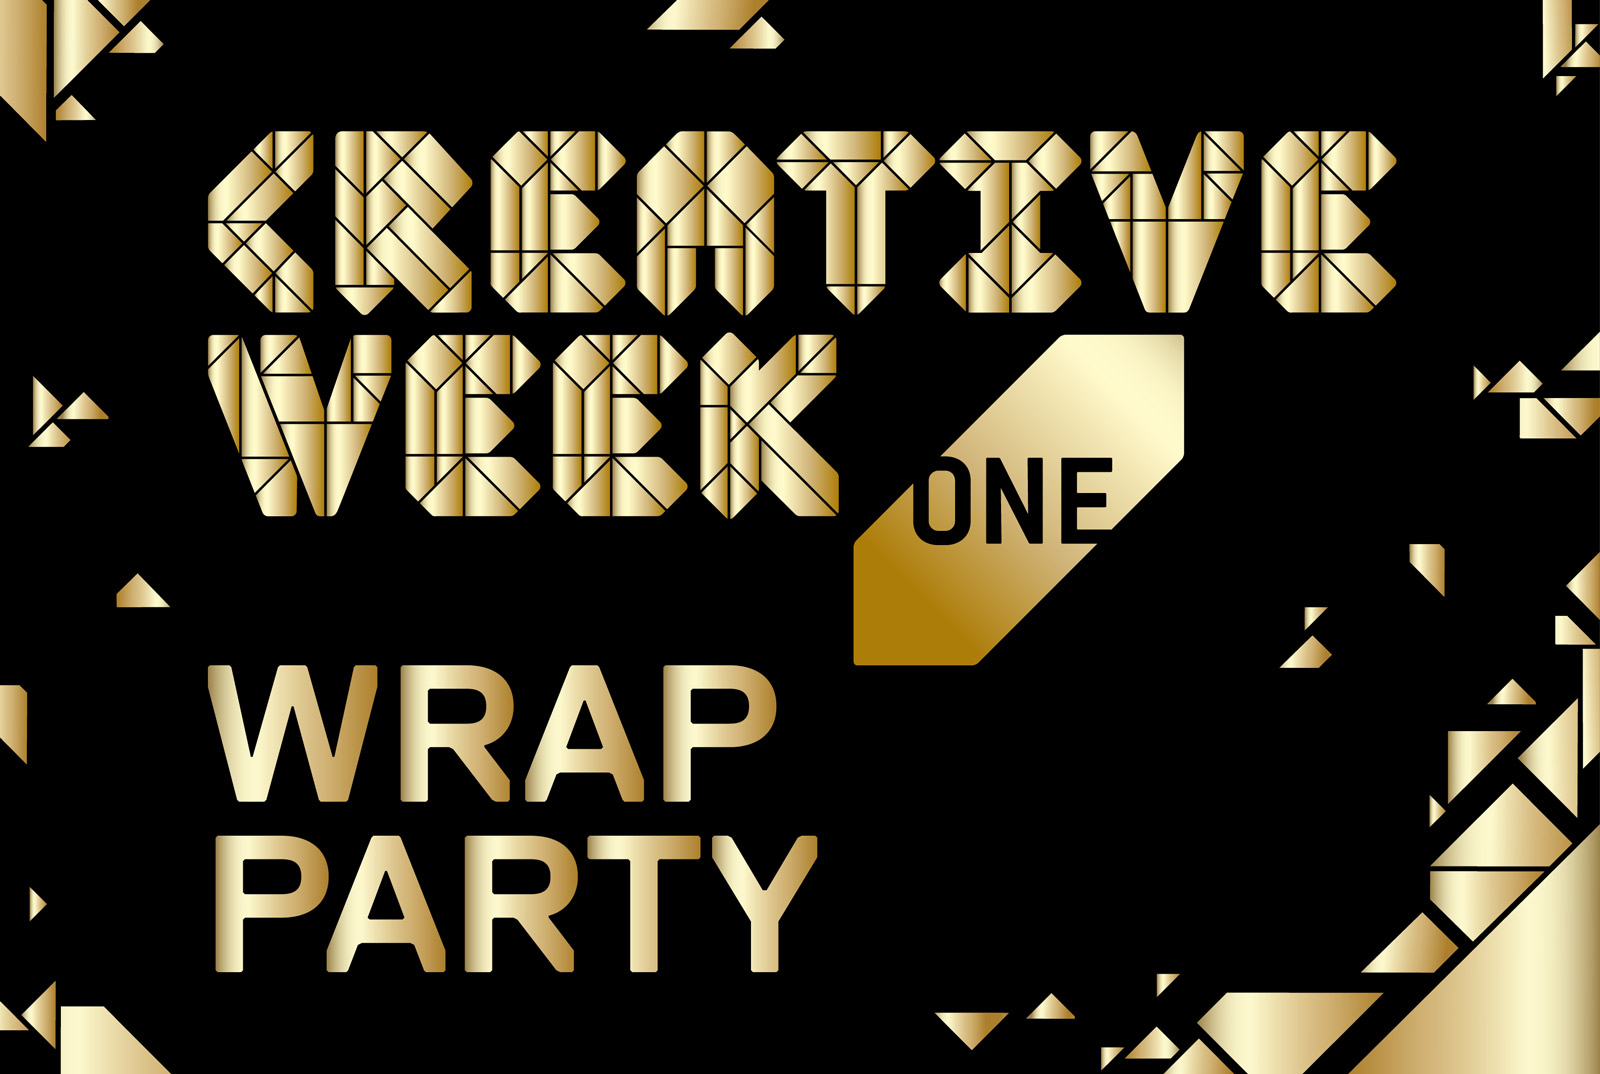 Creative Week Wrap Party